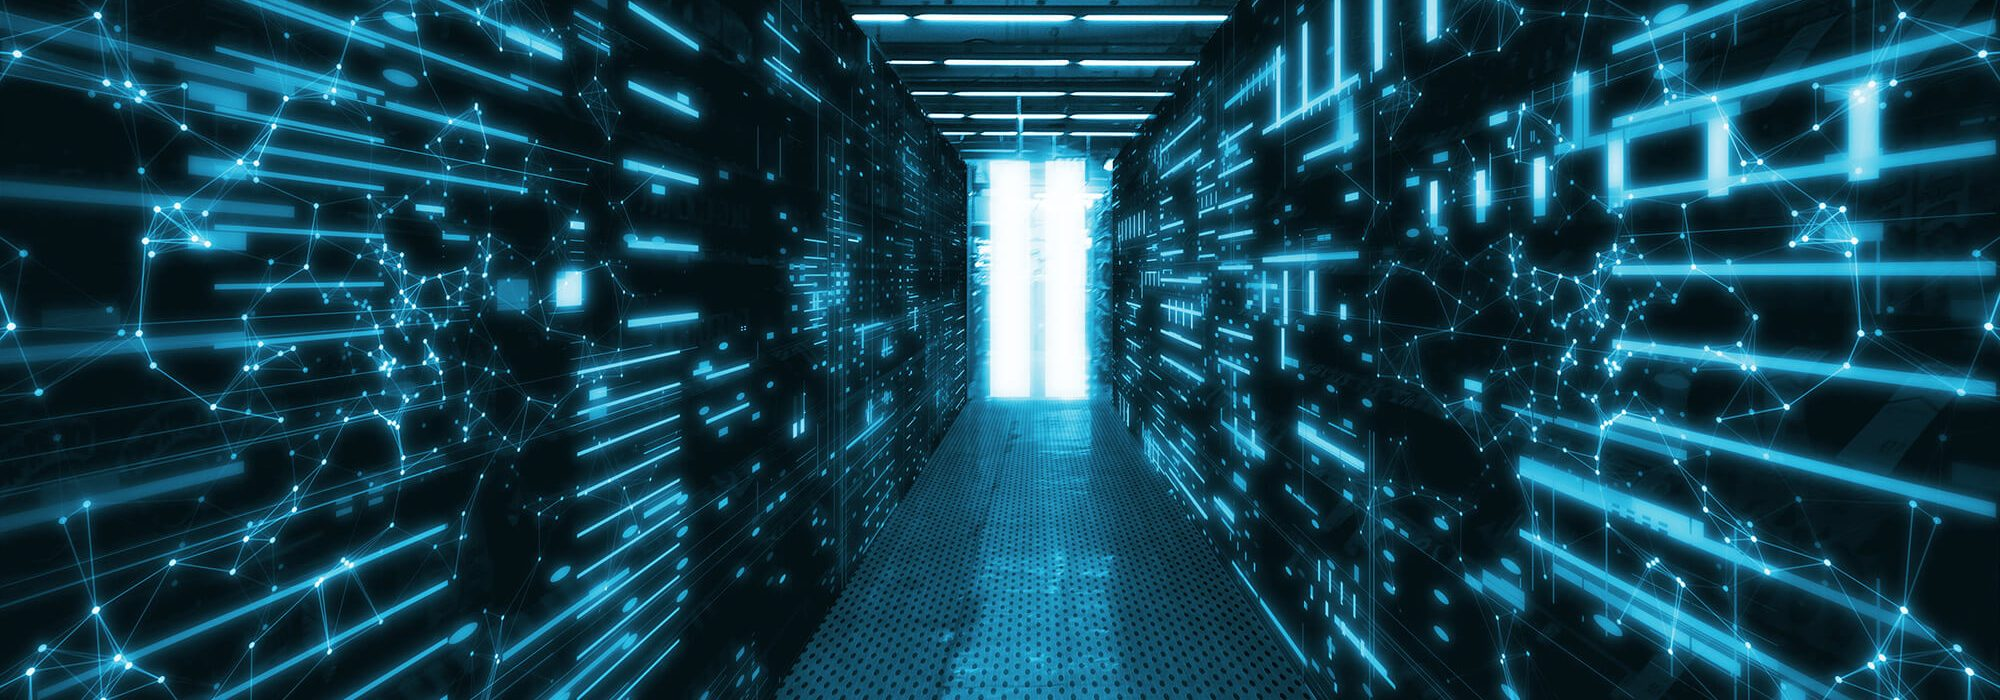 data-center-room-with-abstract-data-servers-glowing-led-indicators